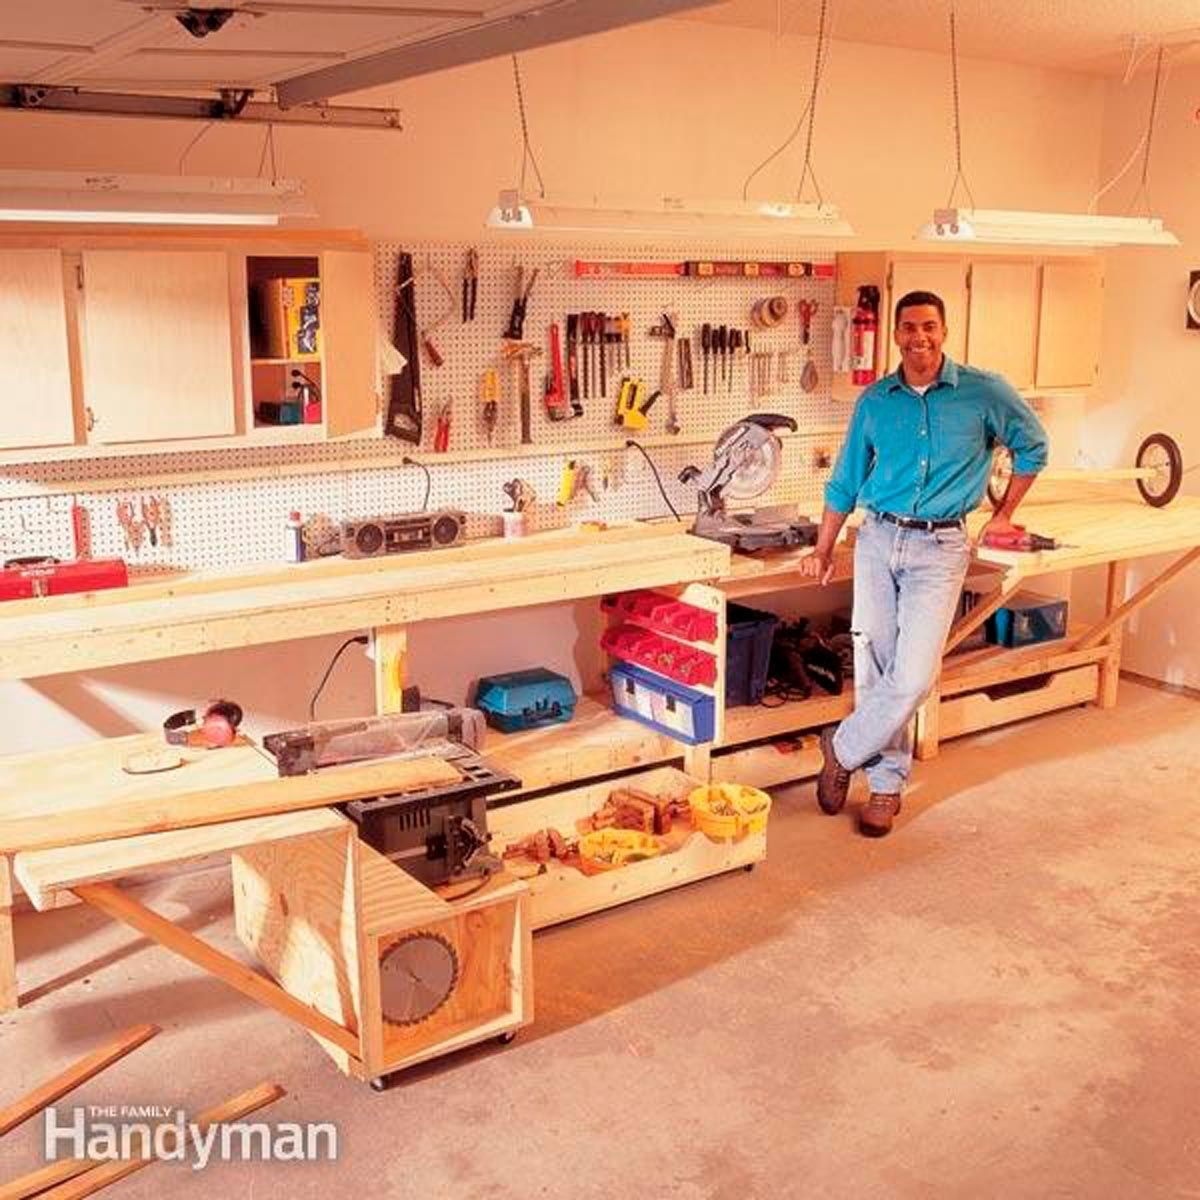 modular workbench workbench plans diy workbench on cool diy garage organization ideas 7 measure guide on garage organization id=40018